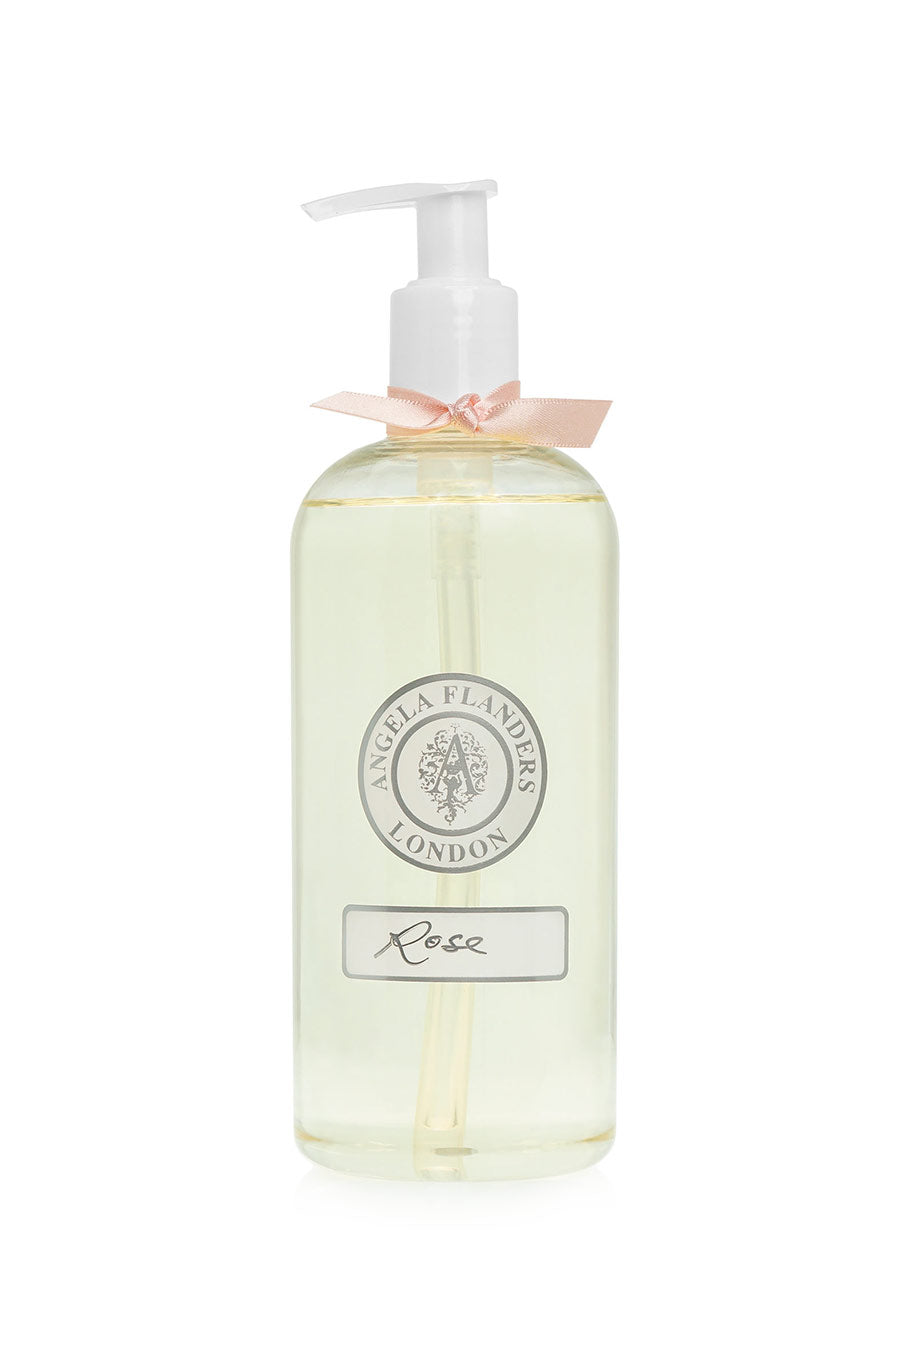 Angela Flanders Rose Hand & Body Wash